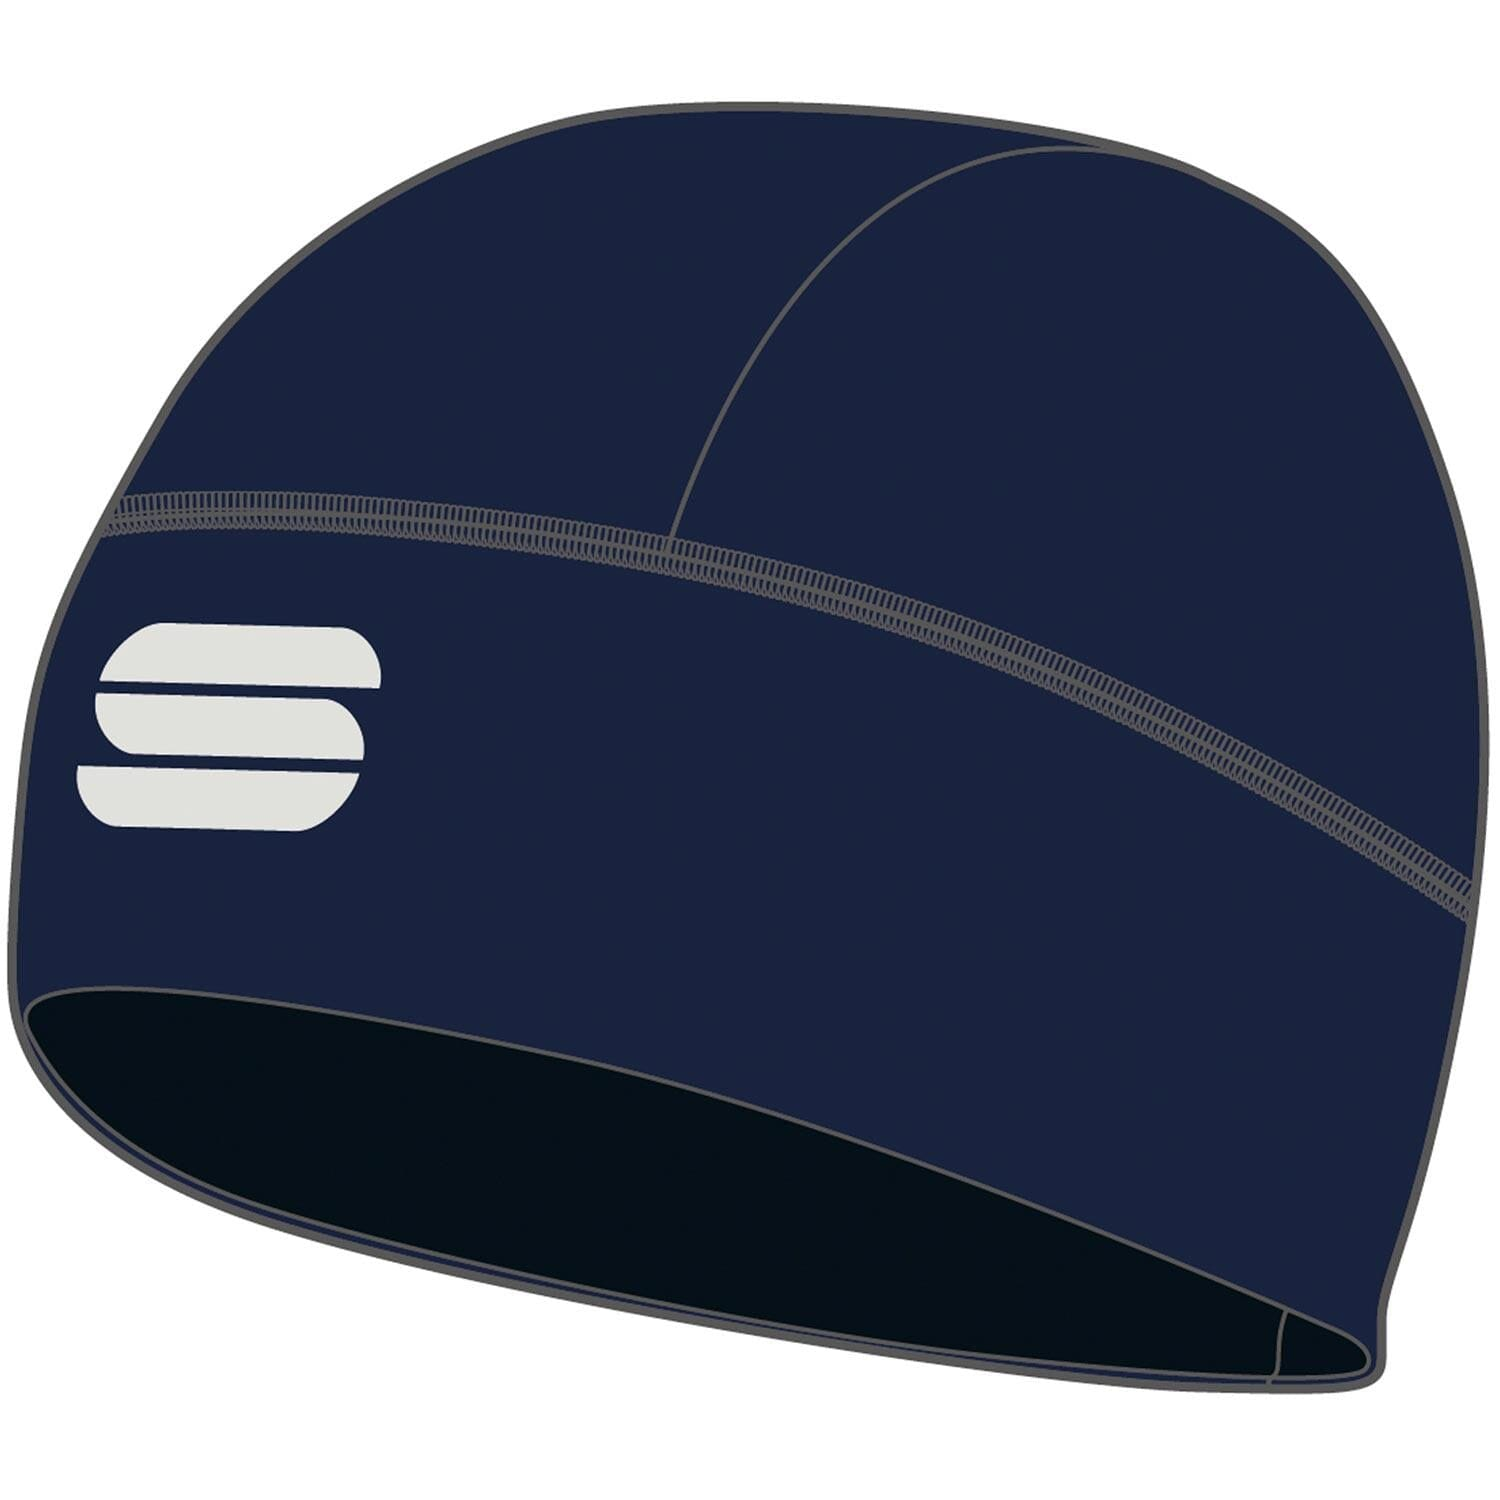 Sportful-Sportful Matchy Underhelmet-Blue-UNI-SF210750138-saddleback-elite-performance-cycling